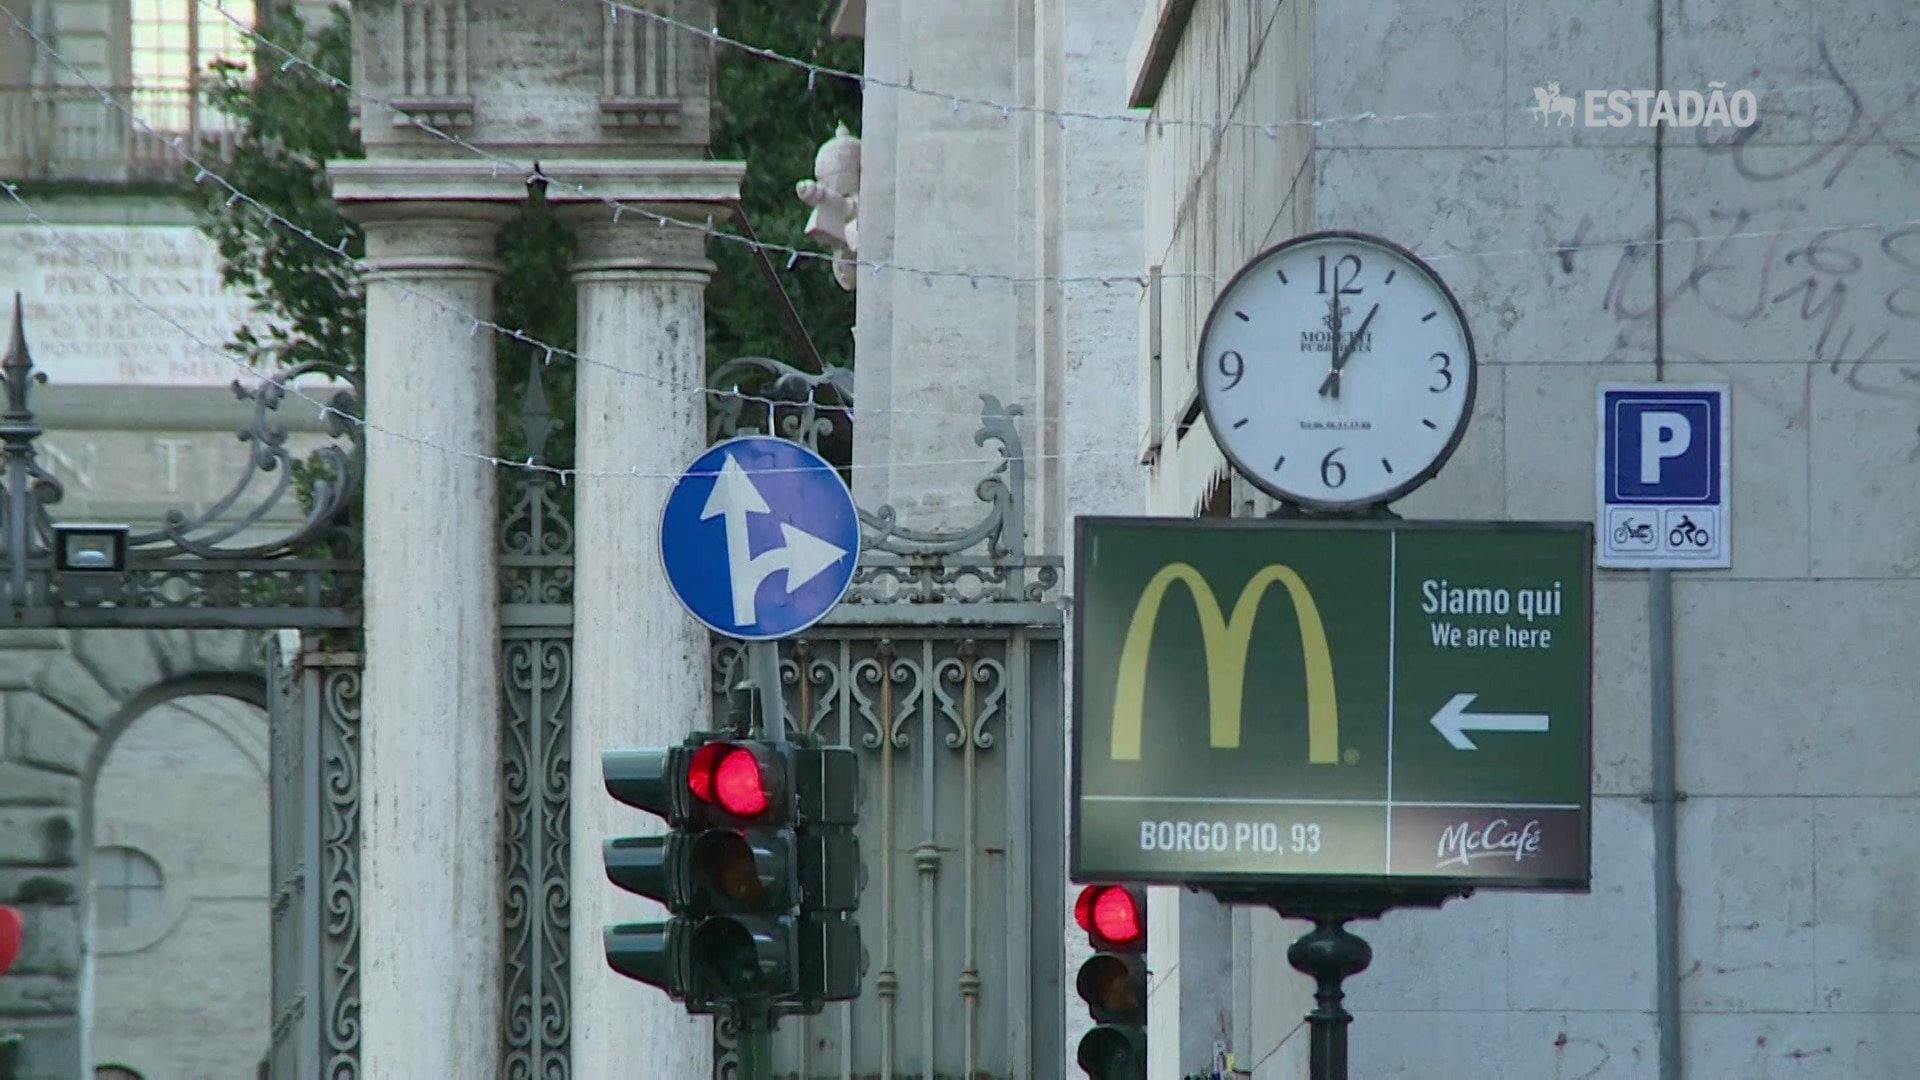 McDonald's abre restaurante perto do Vaticano